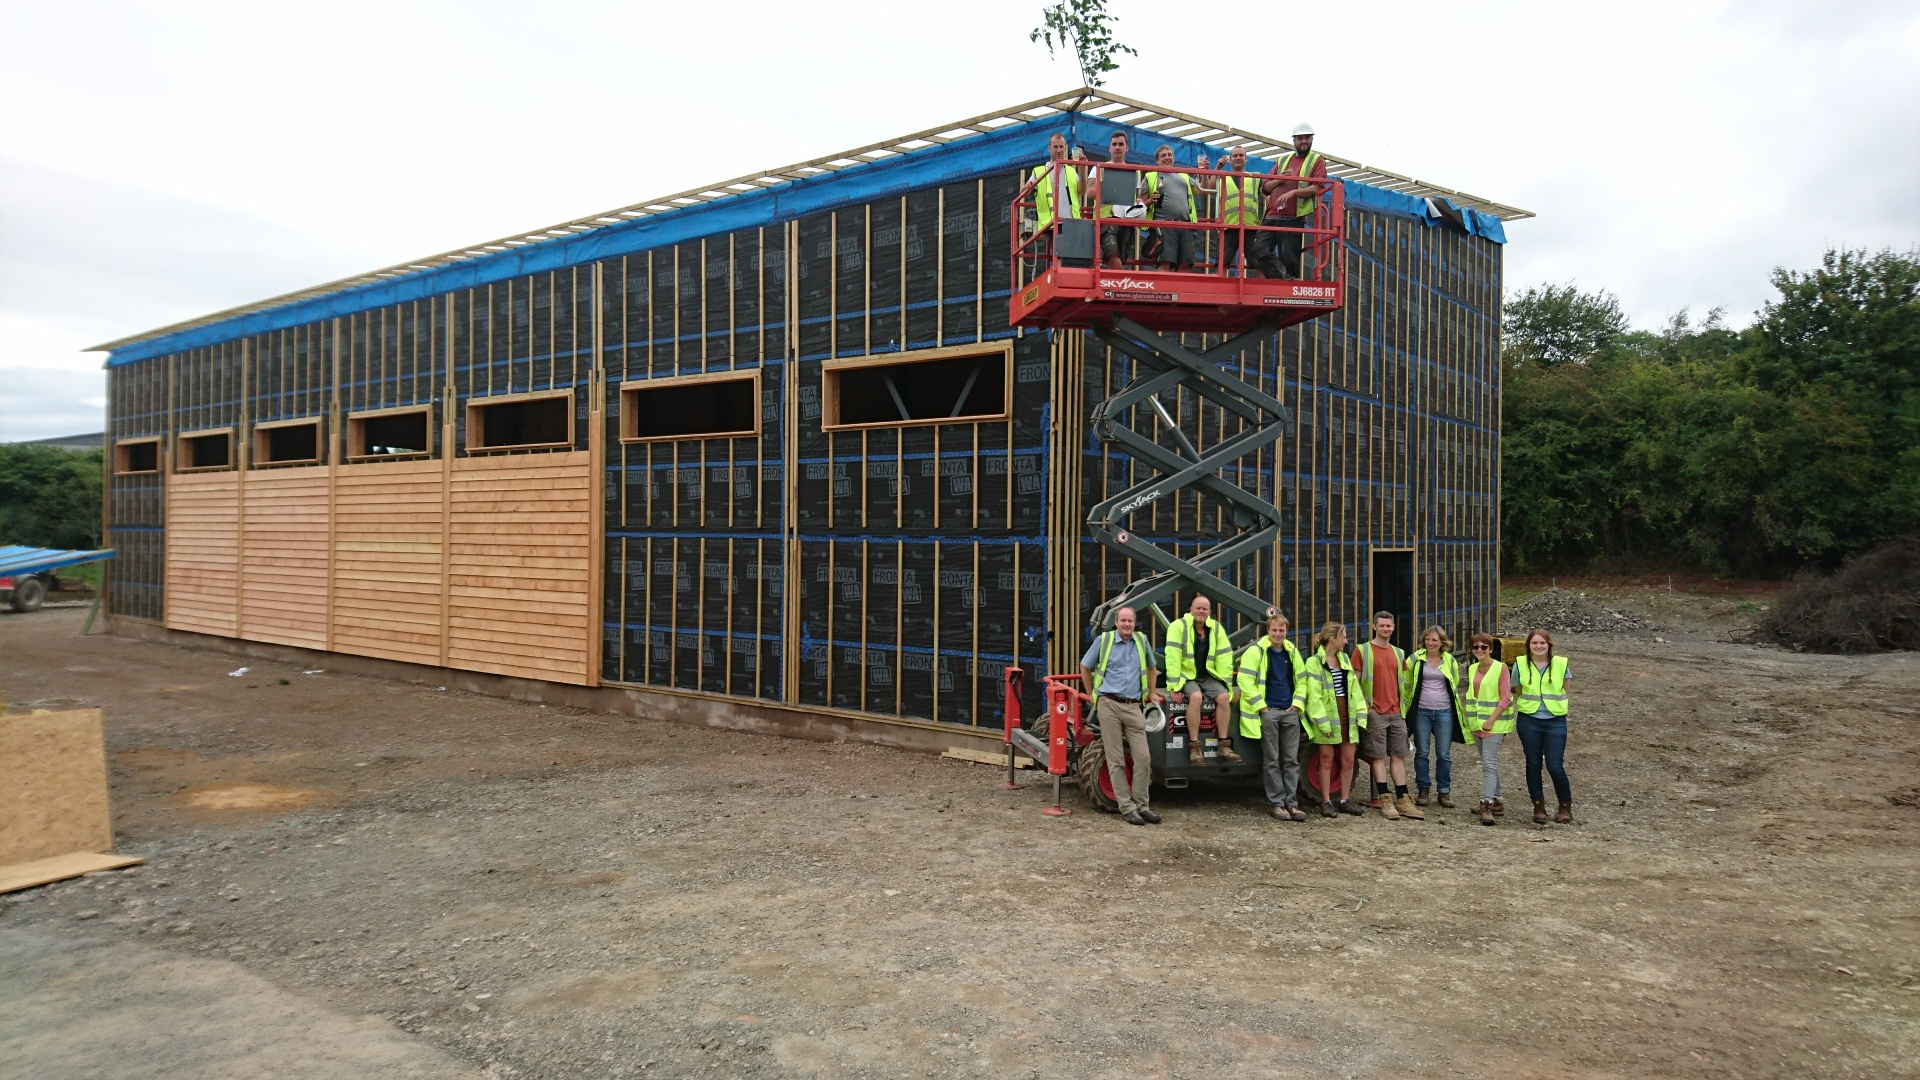 A building under construction with 14 people in front of it, 8 or so in front of an articulated lift and the others in the basket above them.